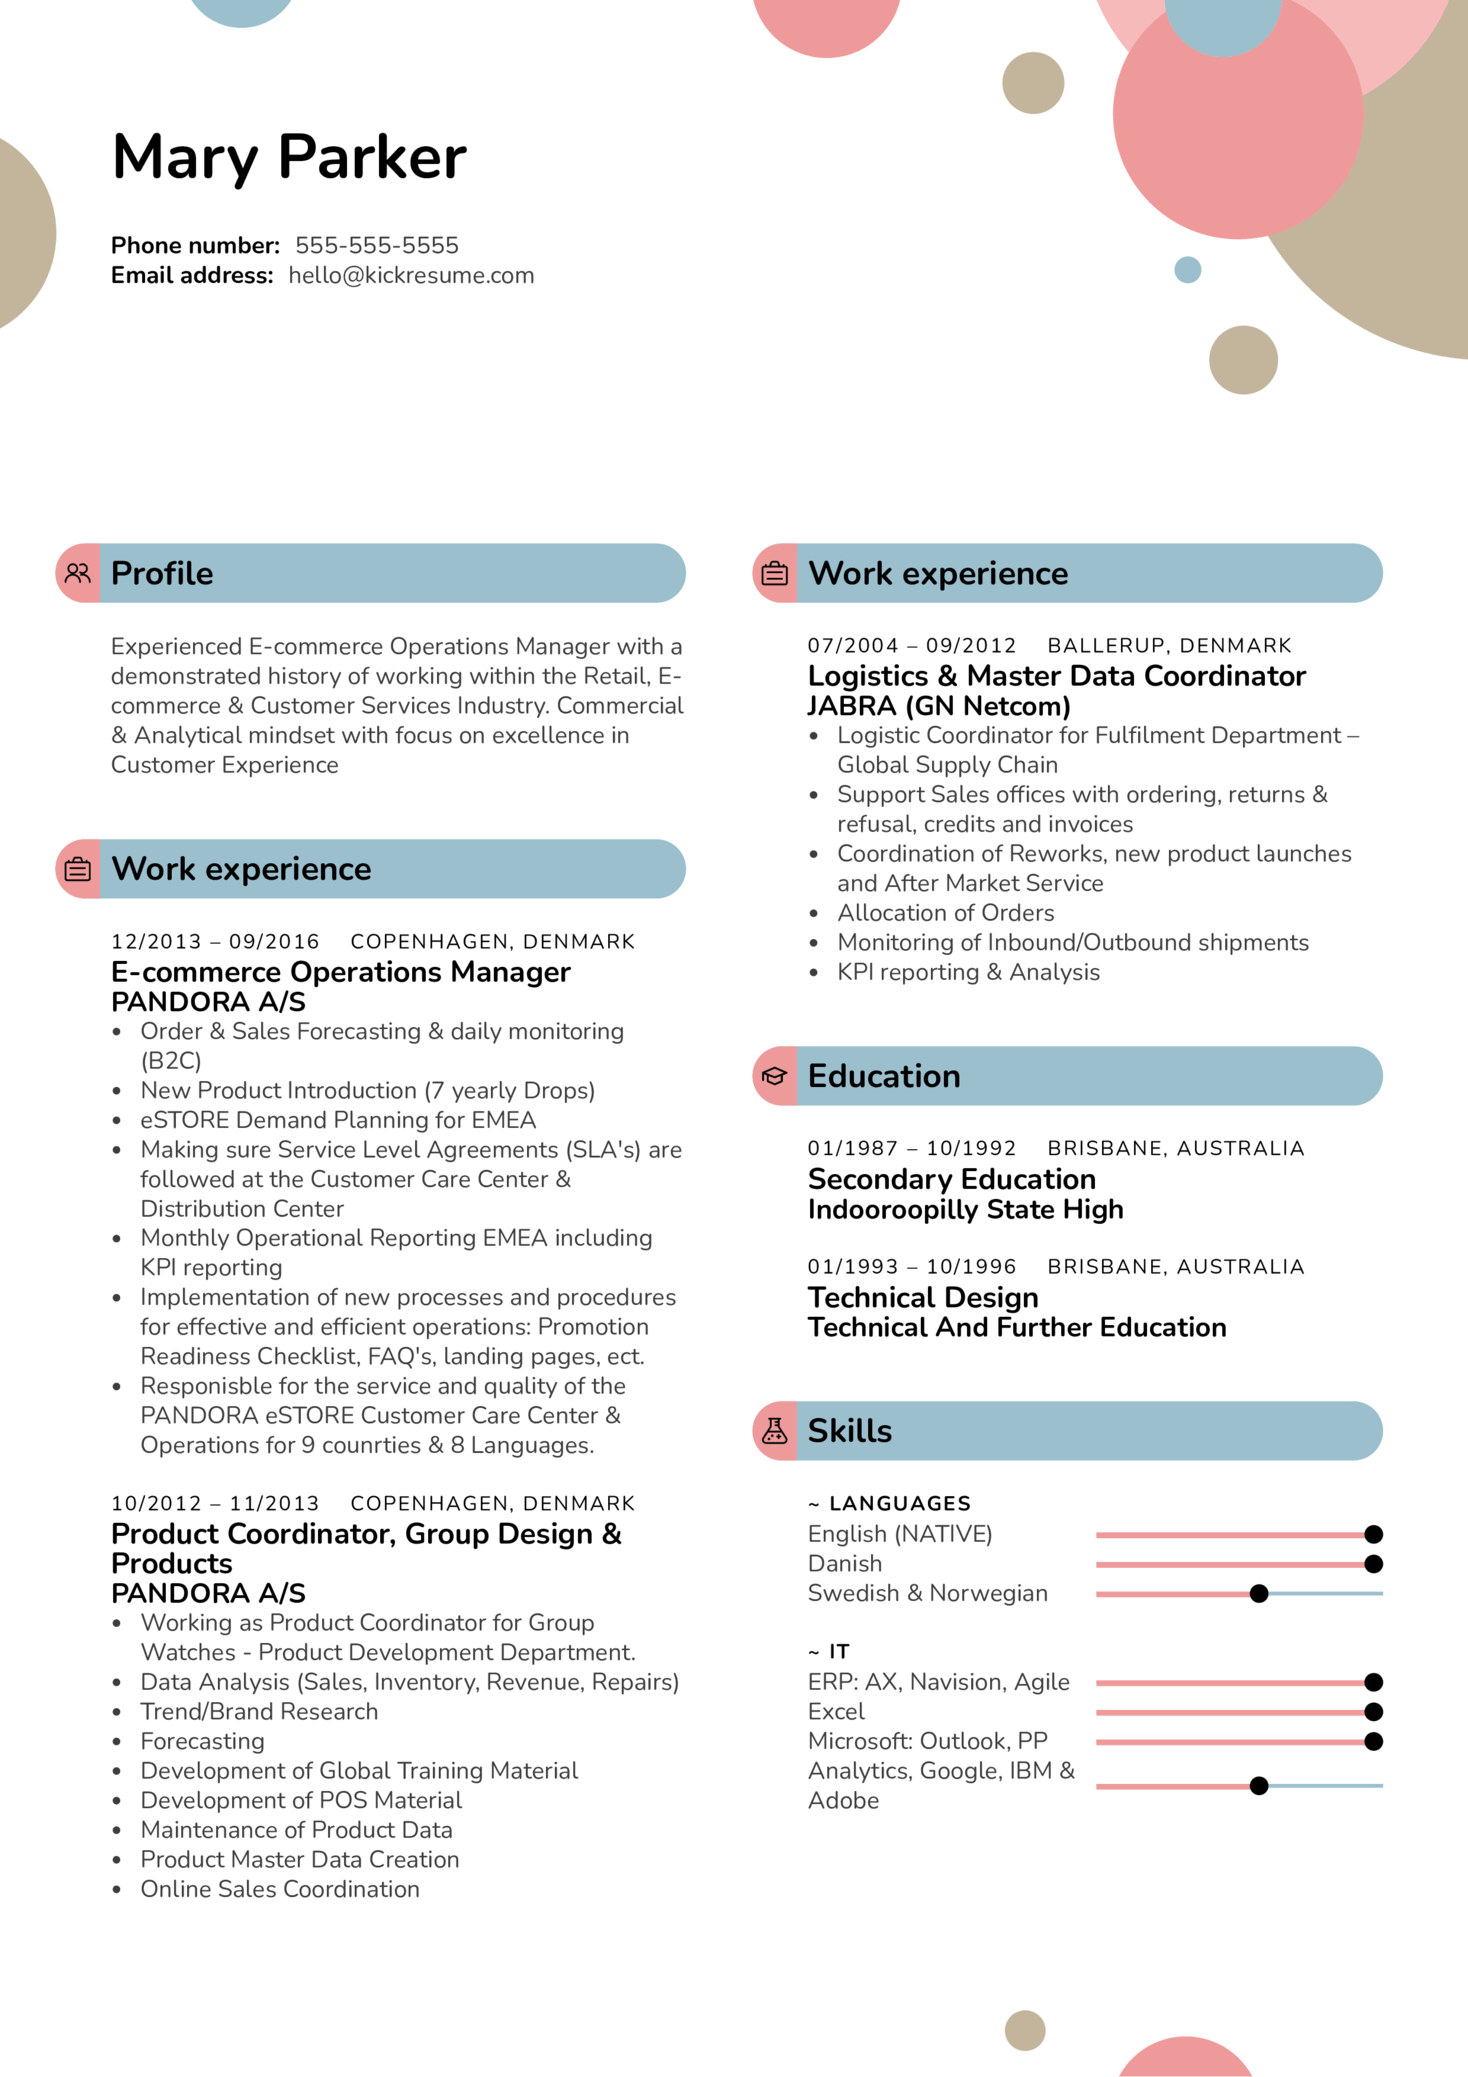 IKEA E-commerce Operations Manager Resume Sample (Part 1)